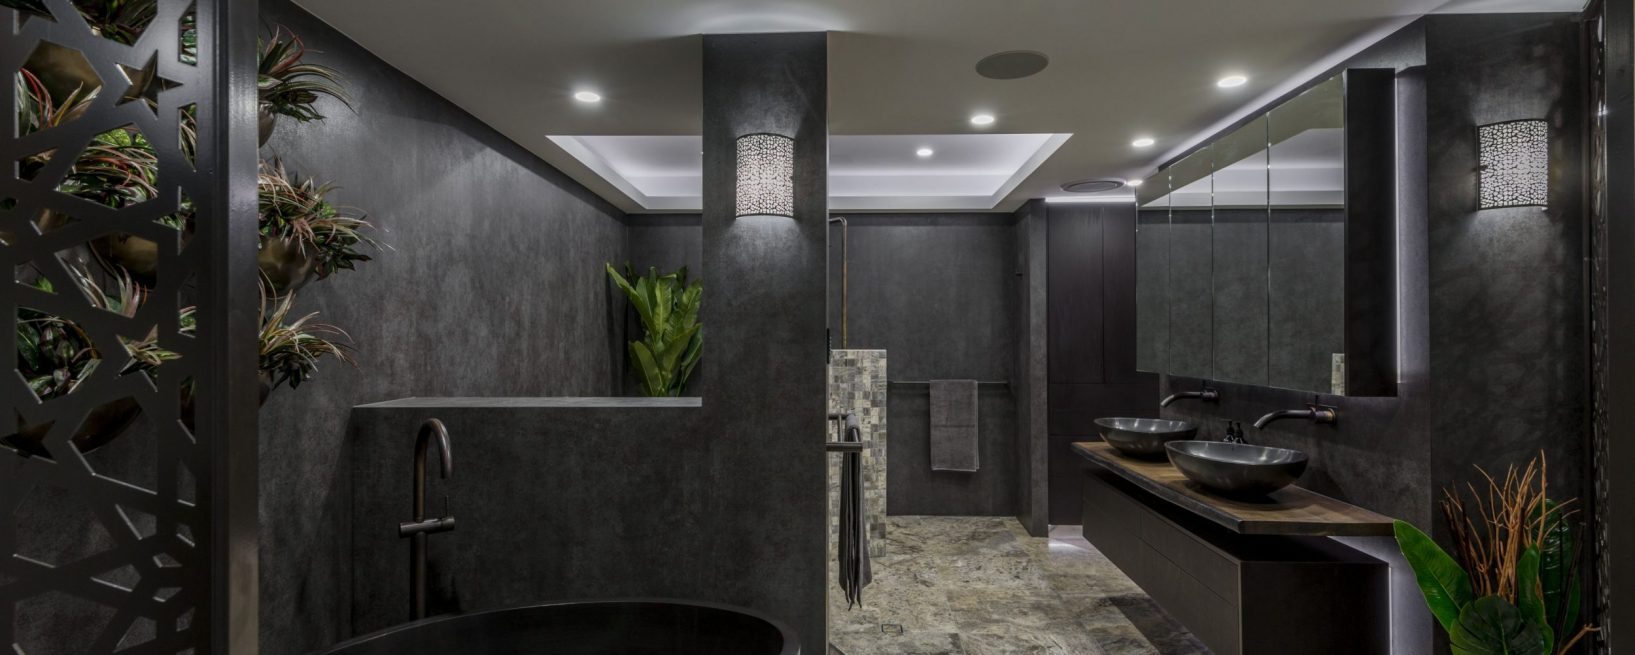 Bathroom Design Australia